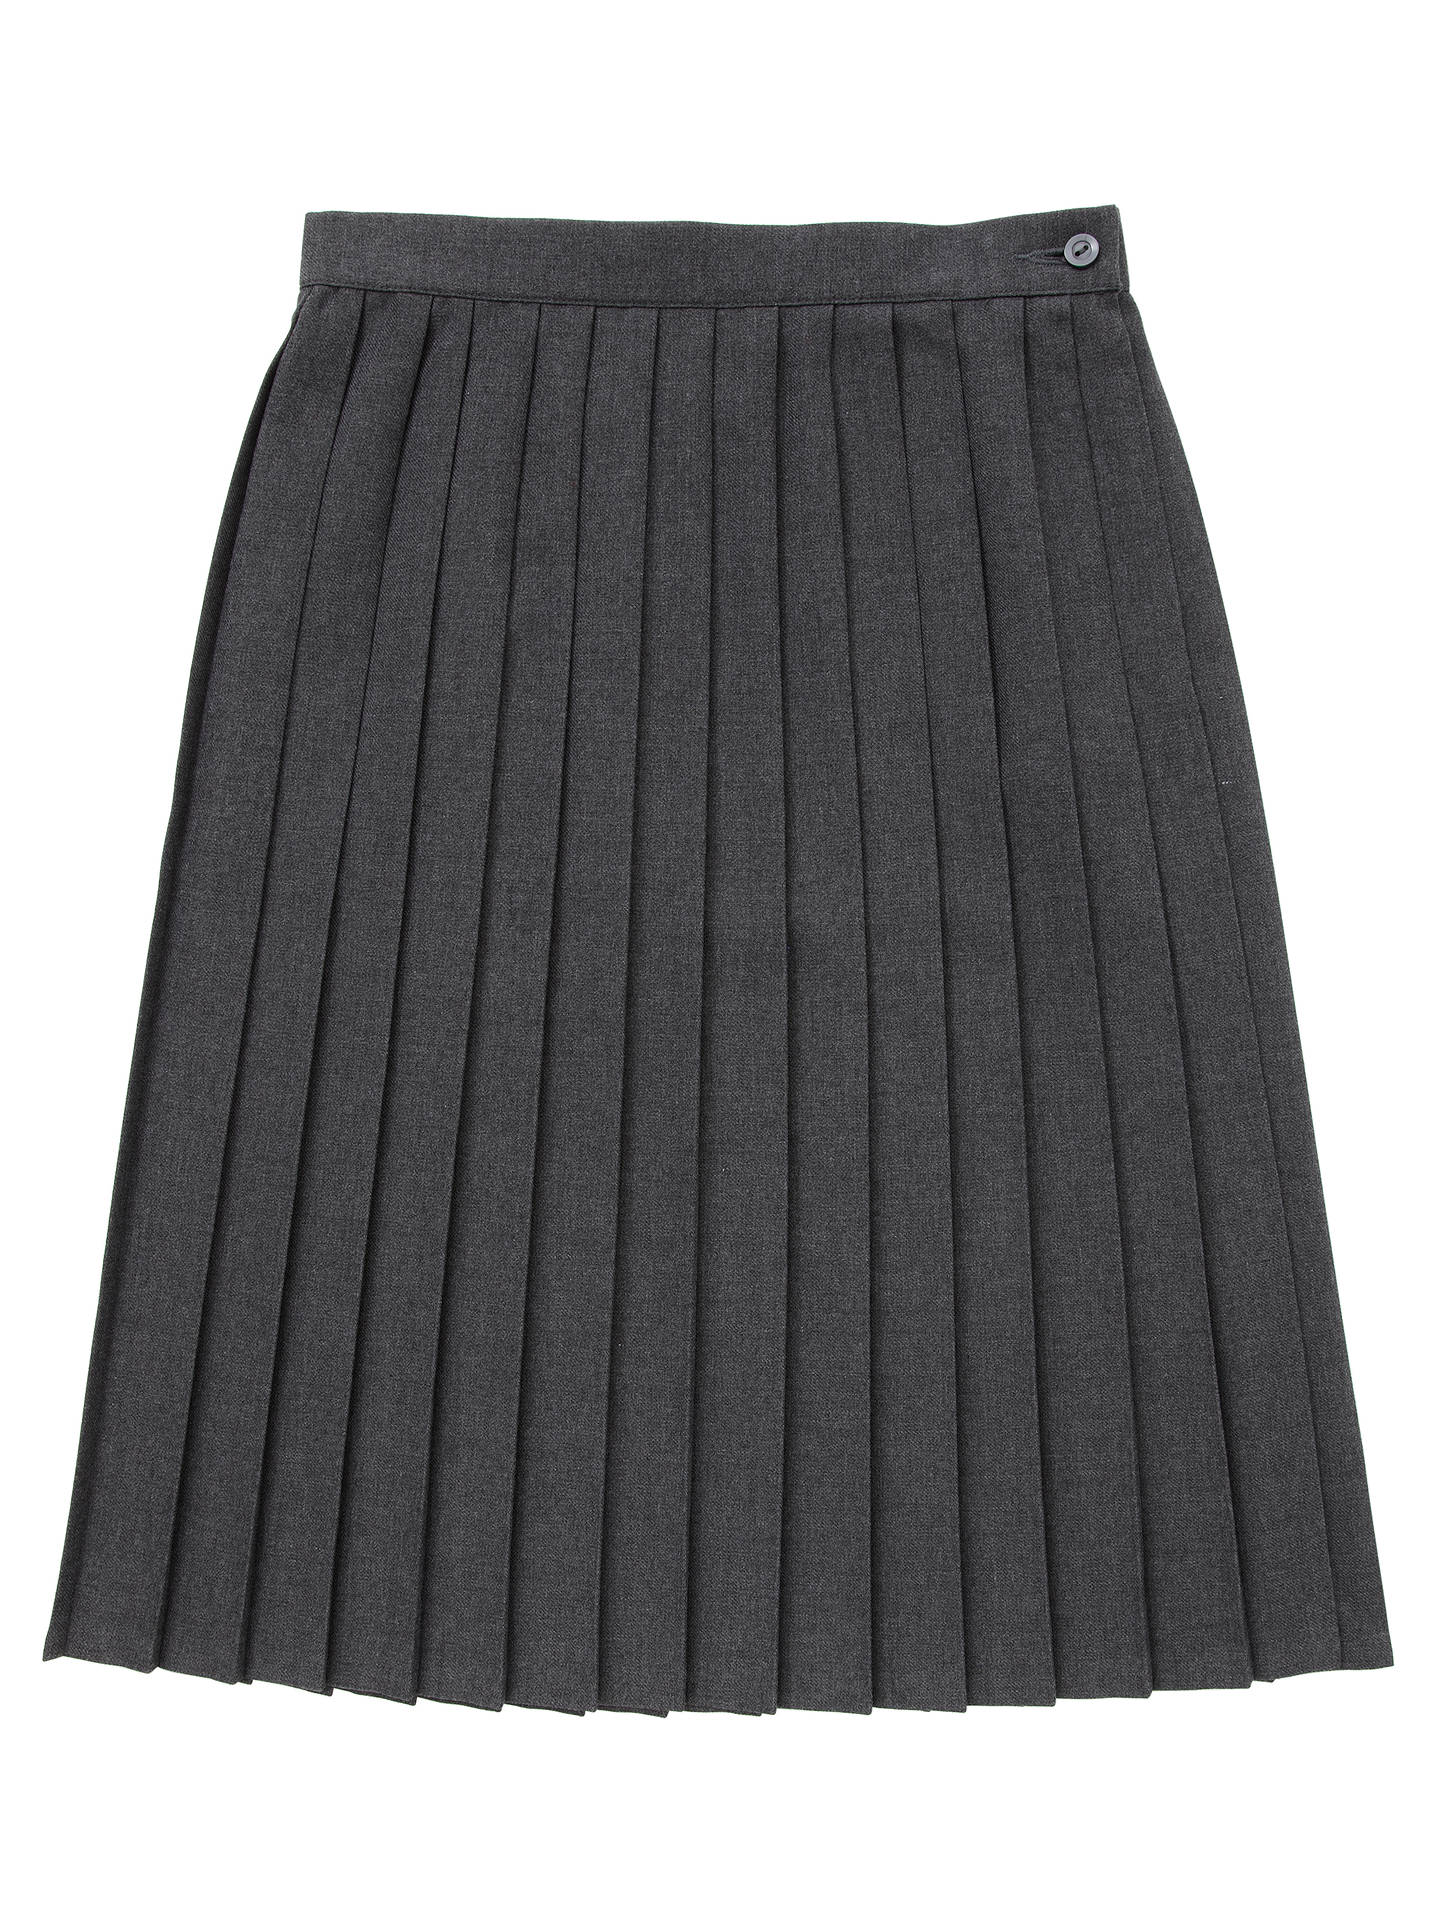 696b9465f215 Buy Francis Holland School Girls' Pleat Skirt, Dark grey, W22/L22 Online